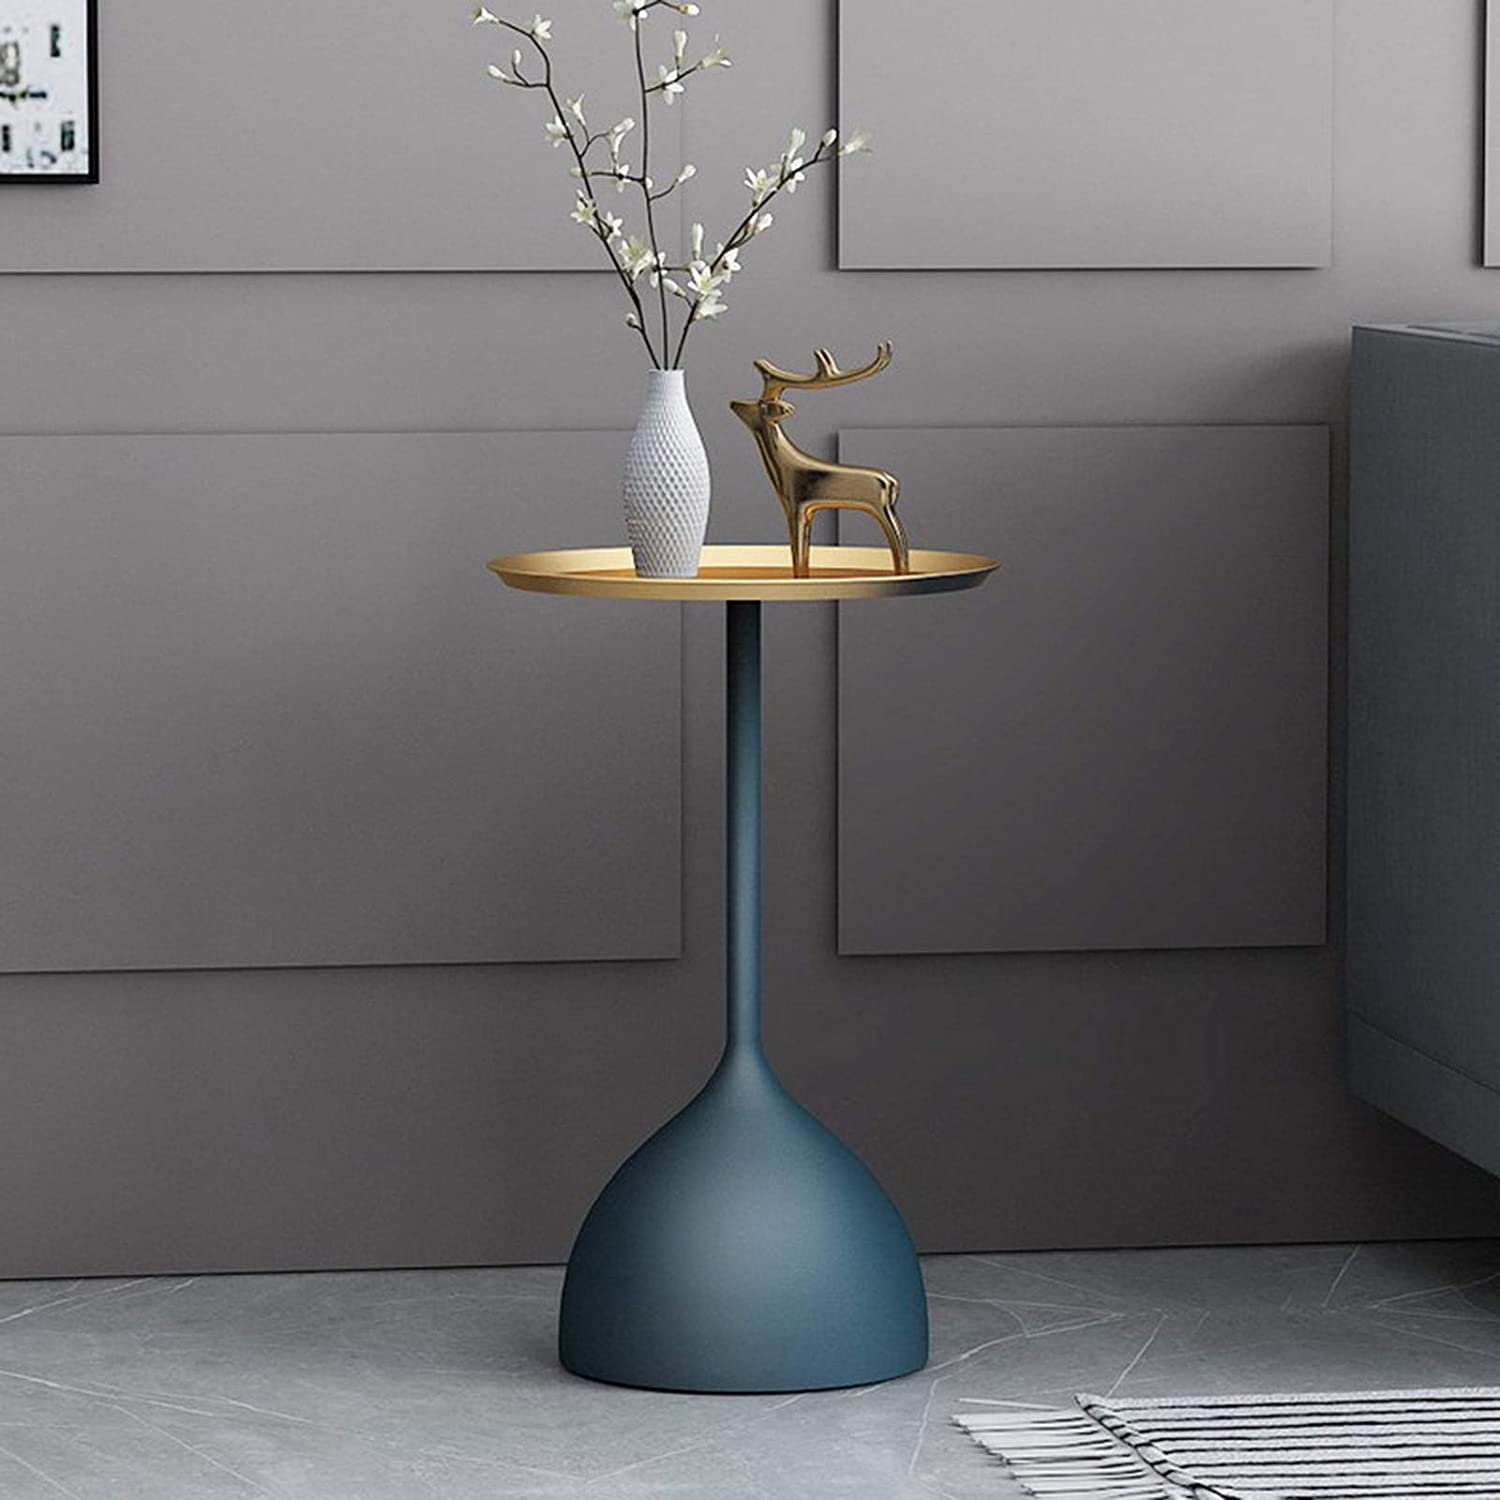 Nordic Creative Bedside Ranking TOP17 Table Small Coffee Living So Ranking TOP11 Room